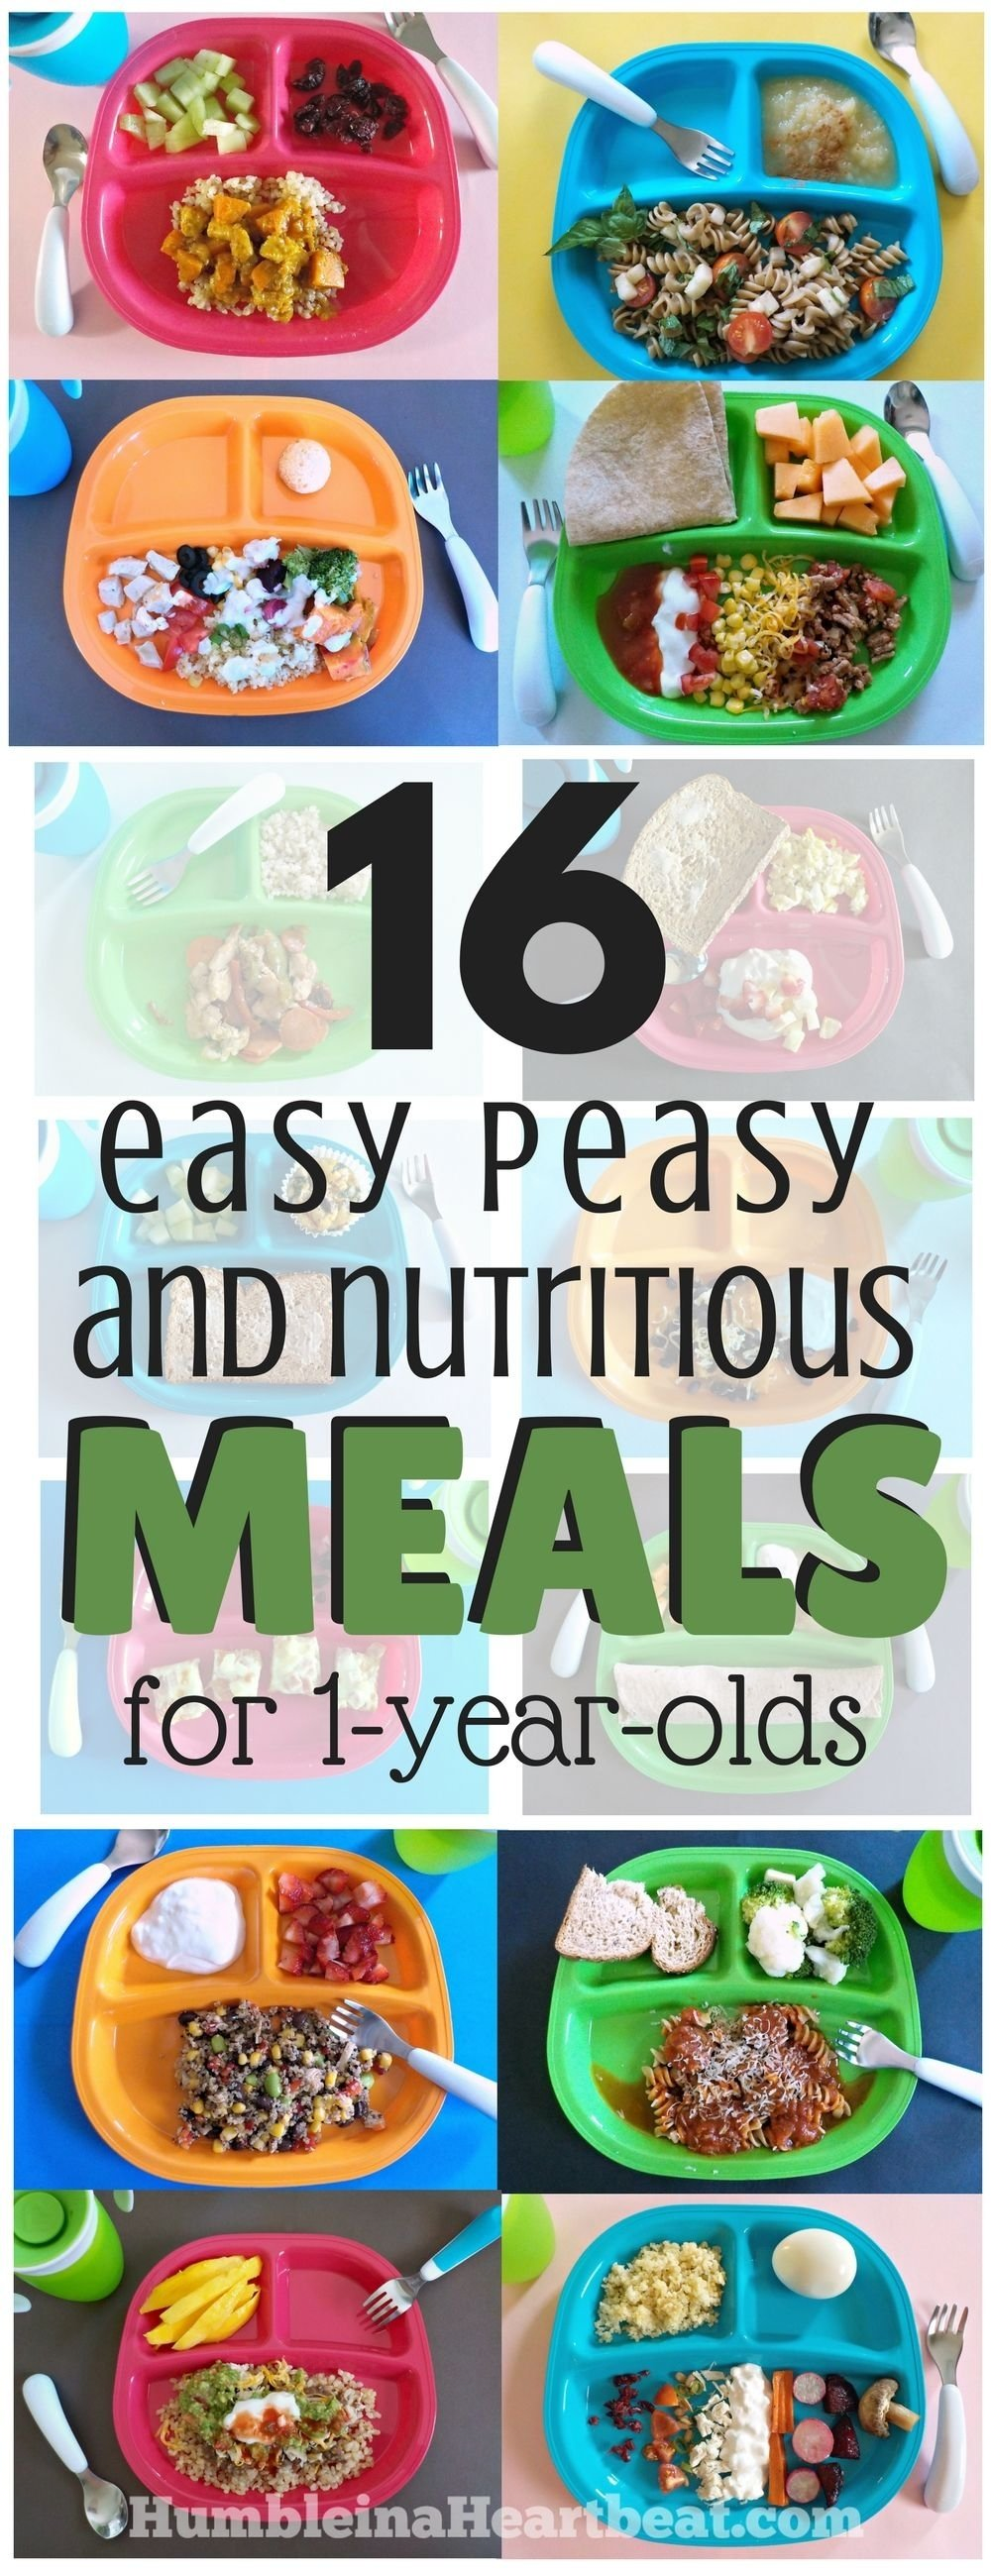 10 Stylish Meal Ideas For 1 Year Old 16 simple meals for your 1 year old that will make you supermom 7